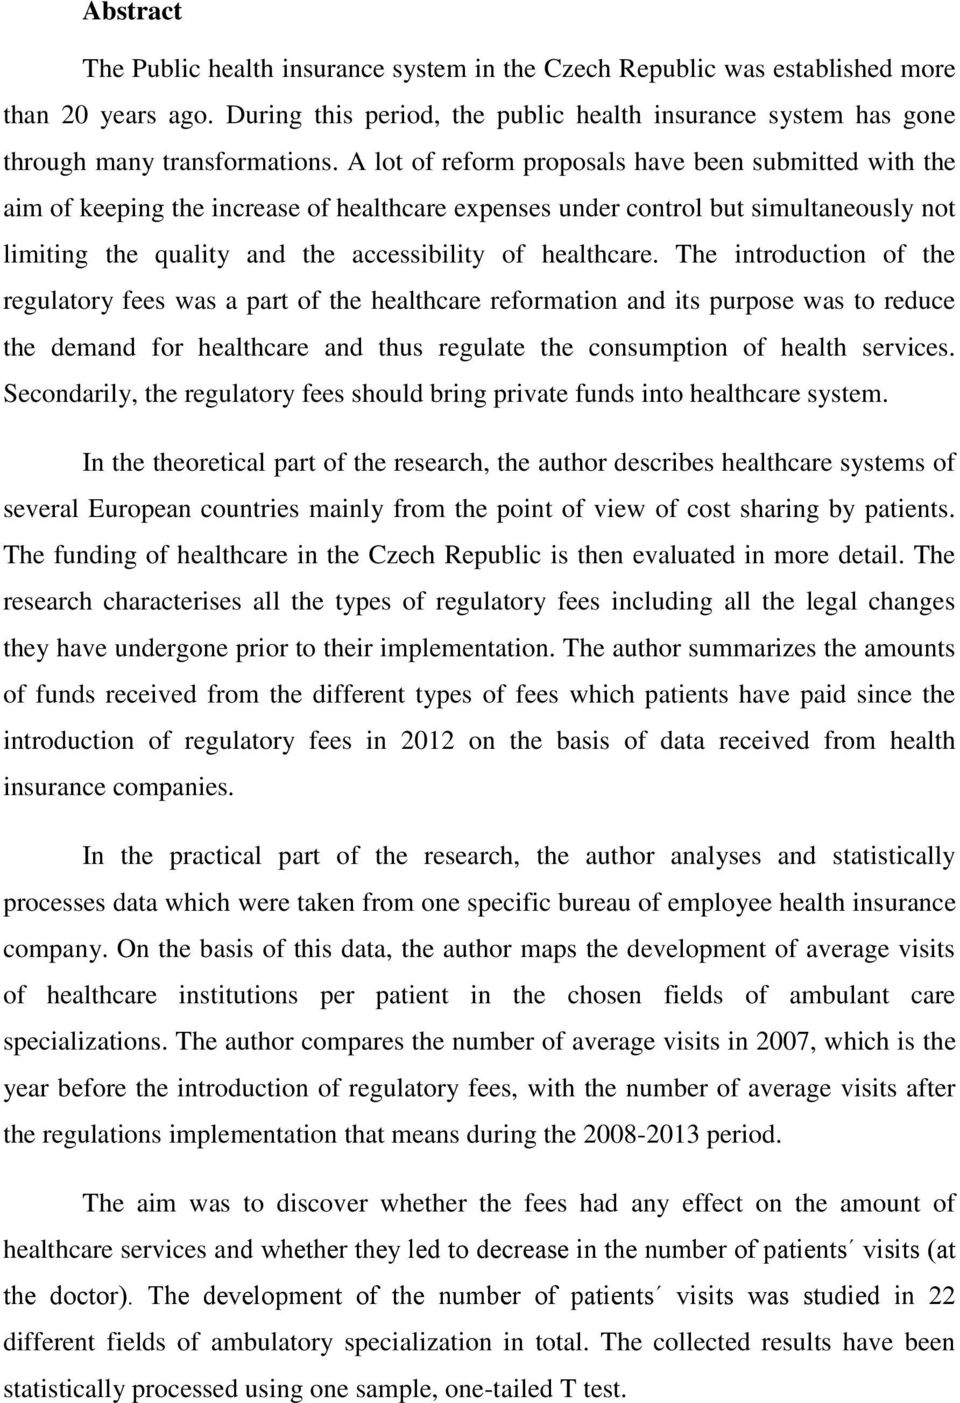 The introduction of the regulatory fees was a part of the healthcare reformation and its purpose was to reduce the demand for healthcare and thus regulate the consumption of health services.